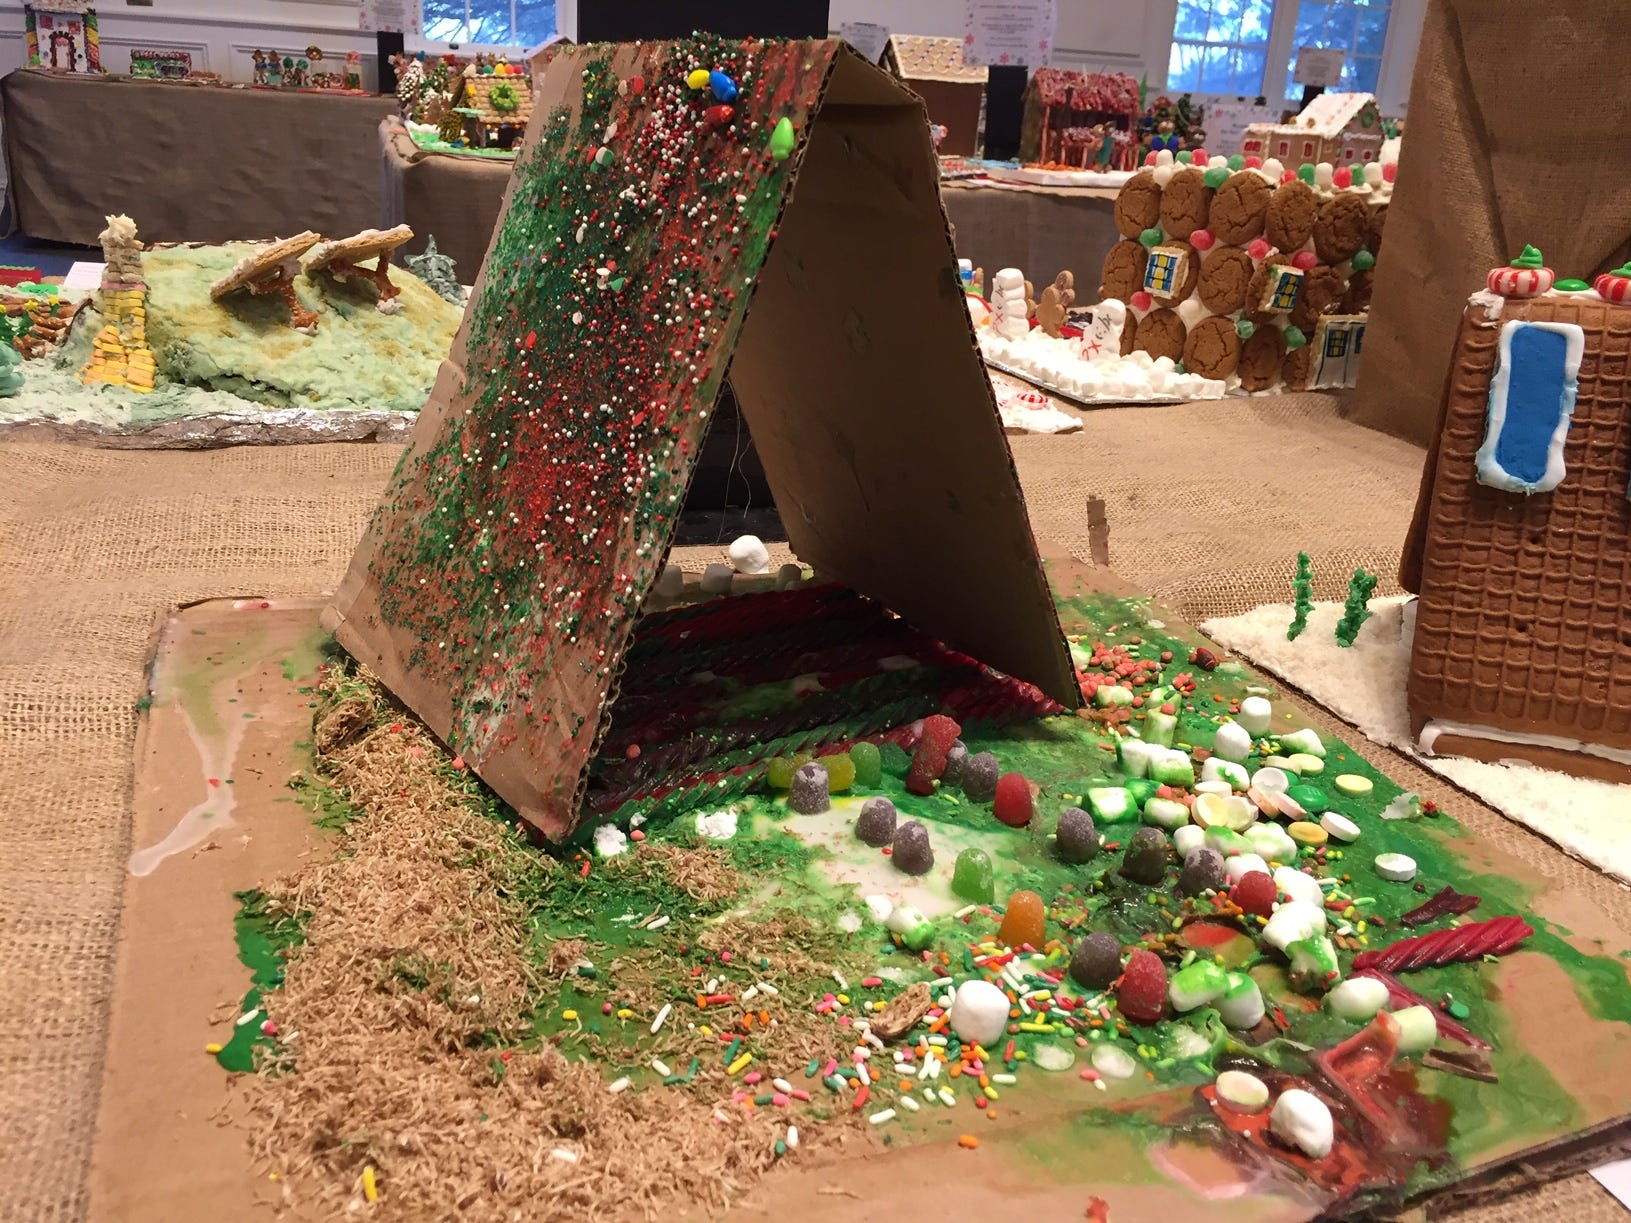 """A Tent"" from Chatham, first grade, at the Gingerbread Wonderland at the Frelinghuysen Arboretum. Child category."